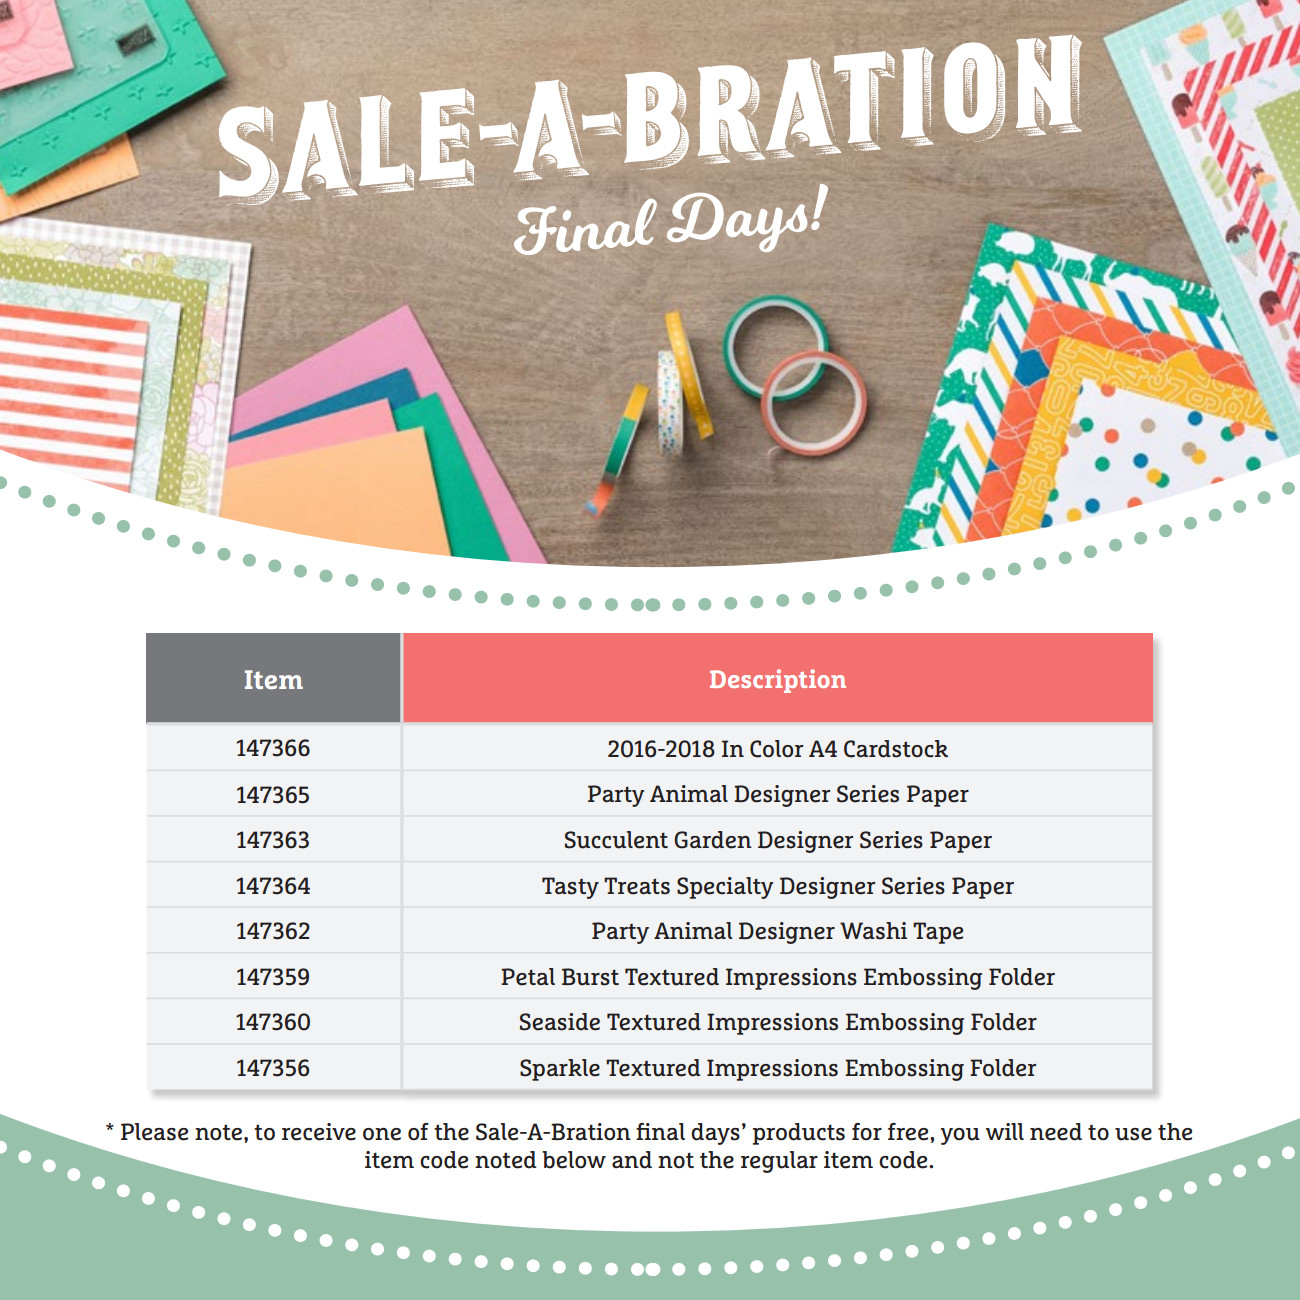 Sale-A-Bration Final Days, Even More Products! | Stampin' Up!'s Biggest Sales Event - click to view PDF